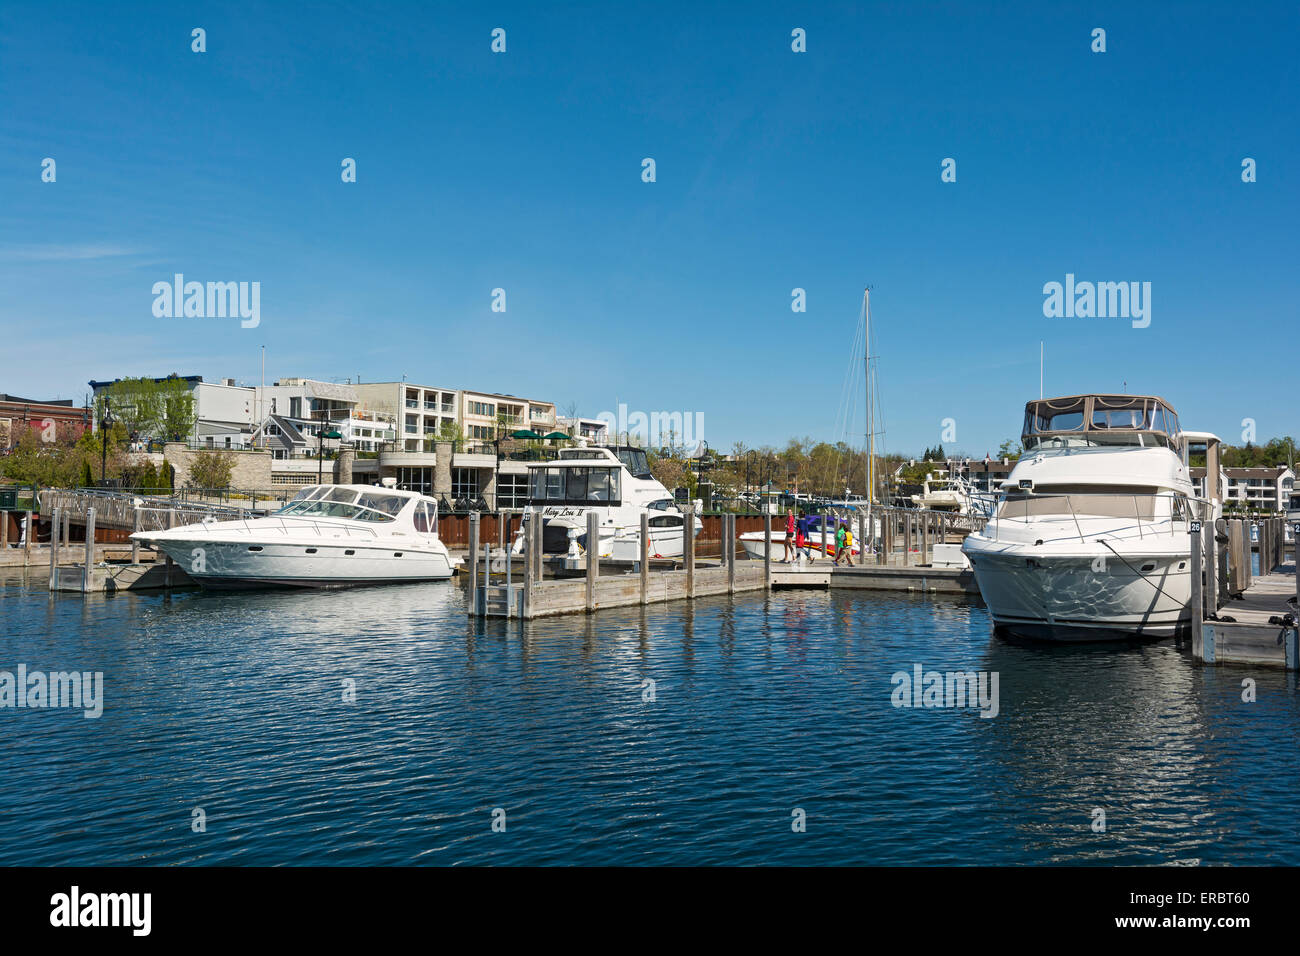 Michigan, Charlevoix, City Marina - Stock Image